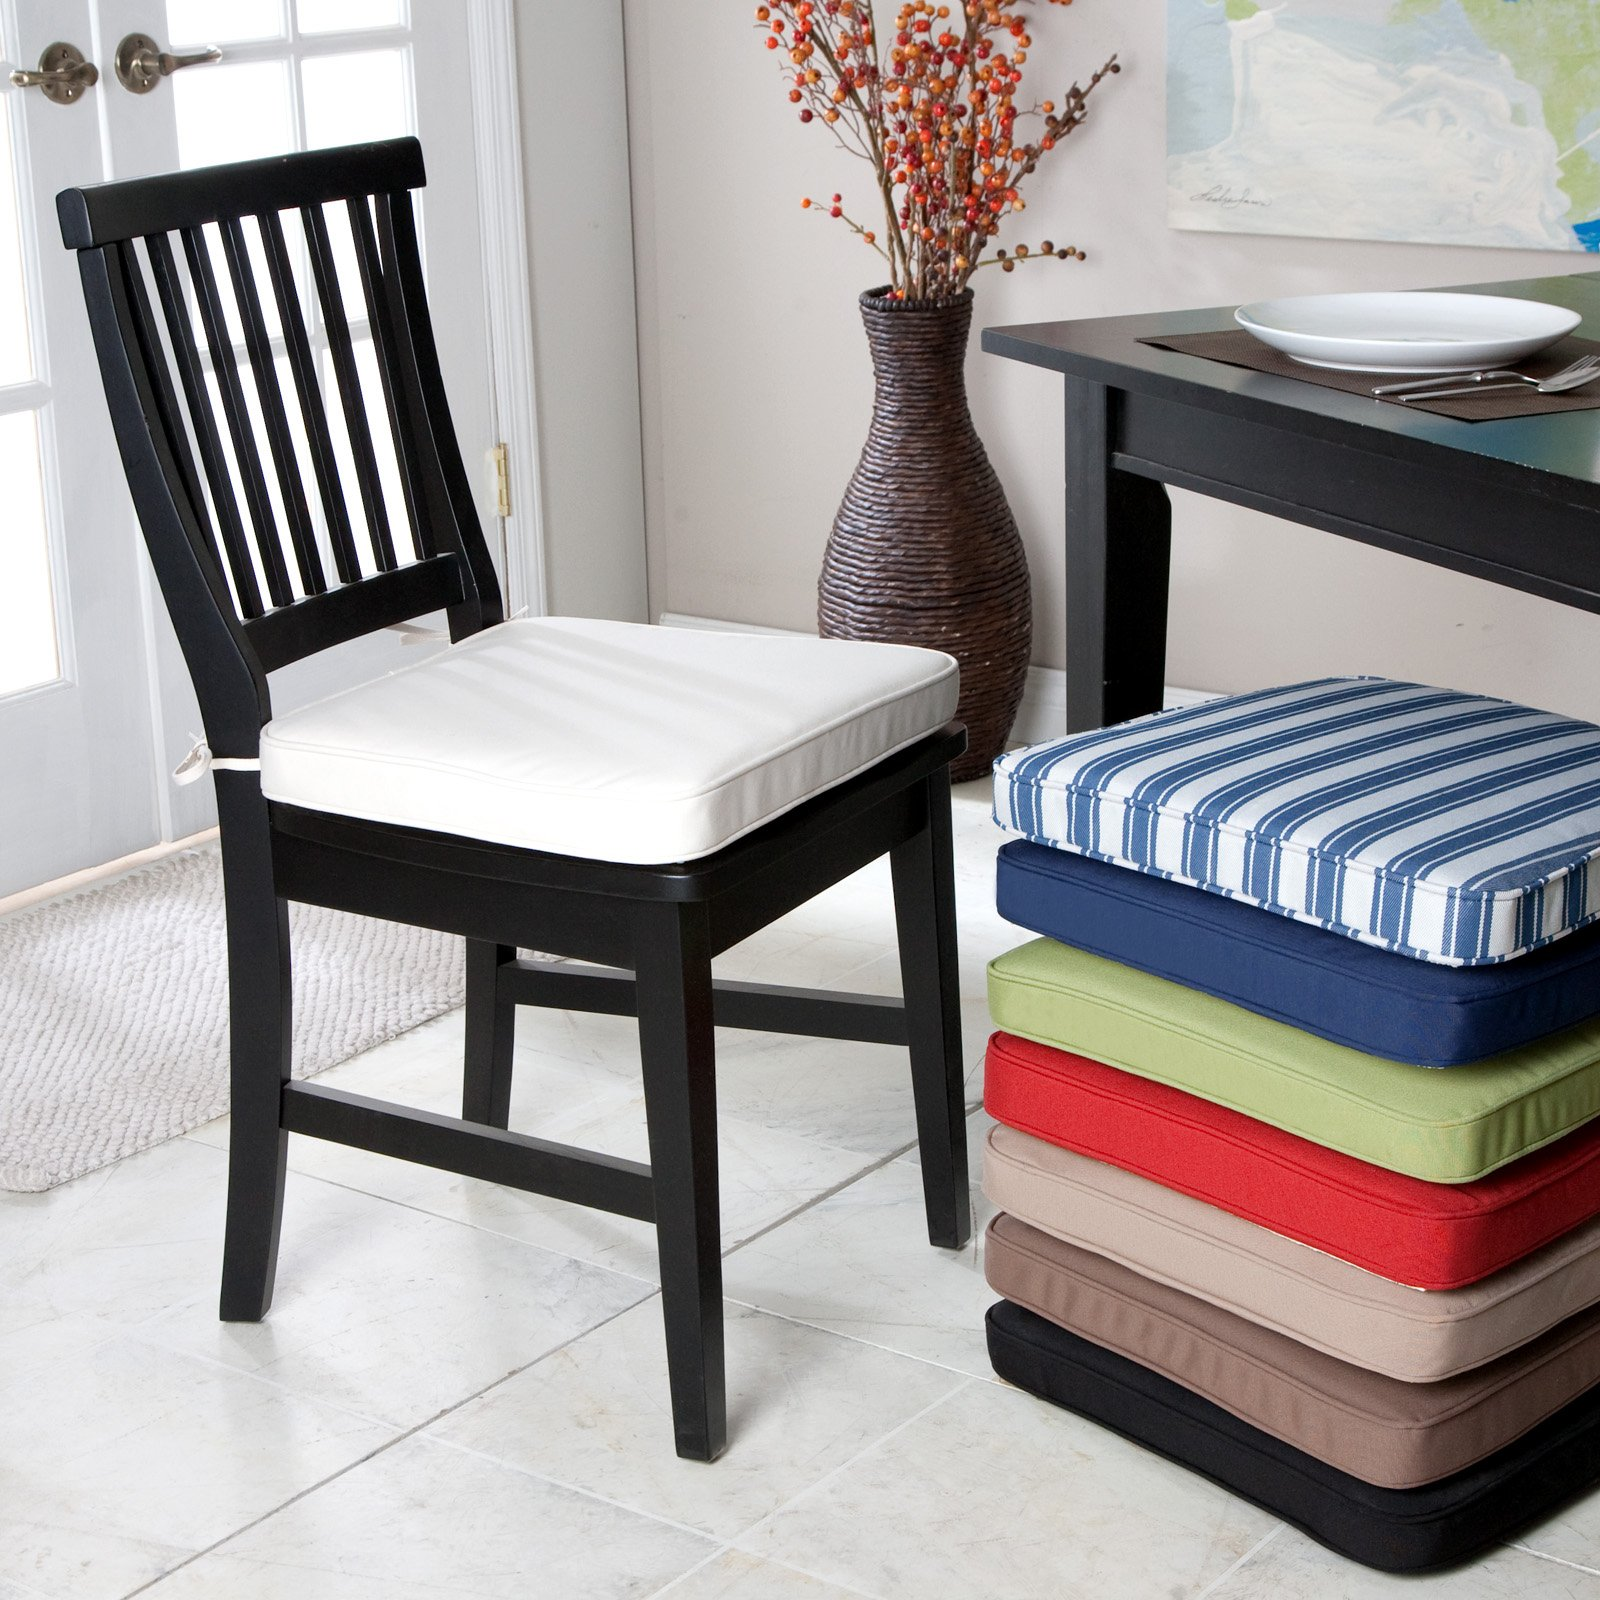 Seat cushions dining room chairs large and beautiful photos photo to select seat cushions - Cushioned dining room chairs ...